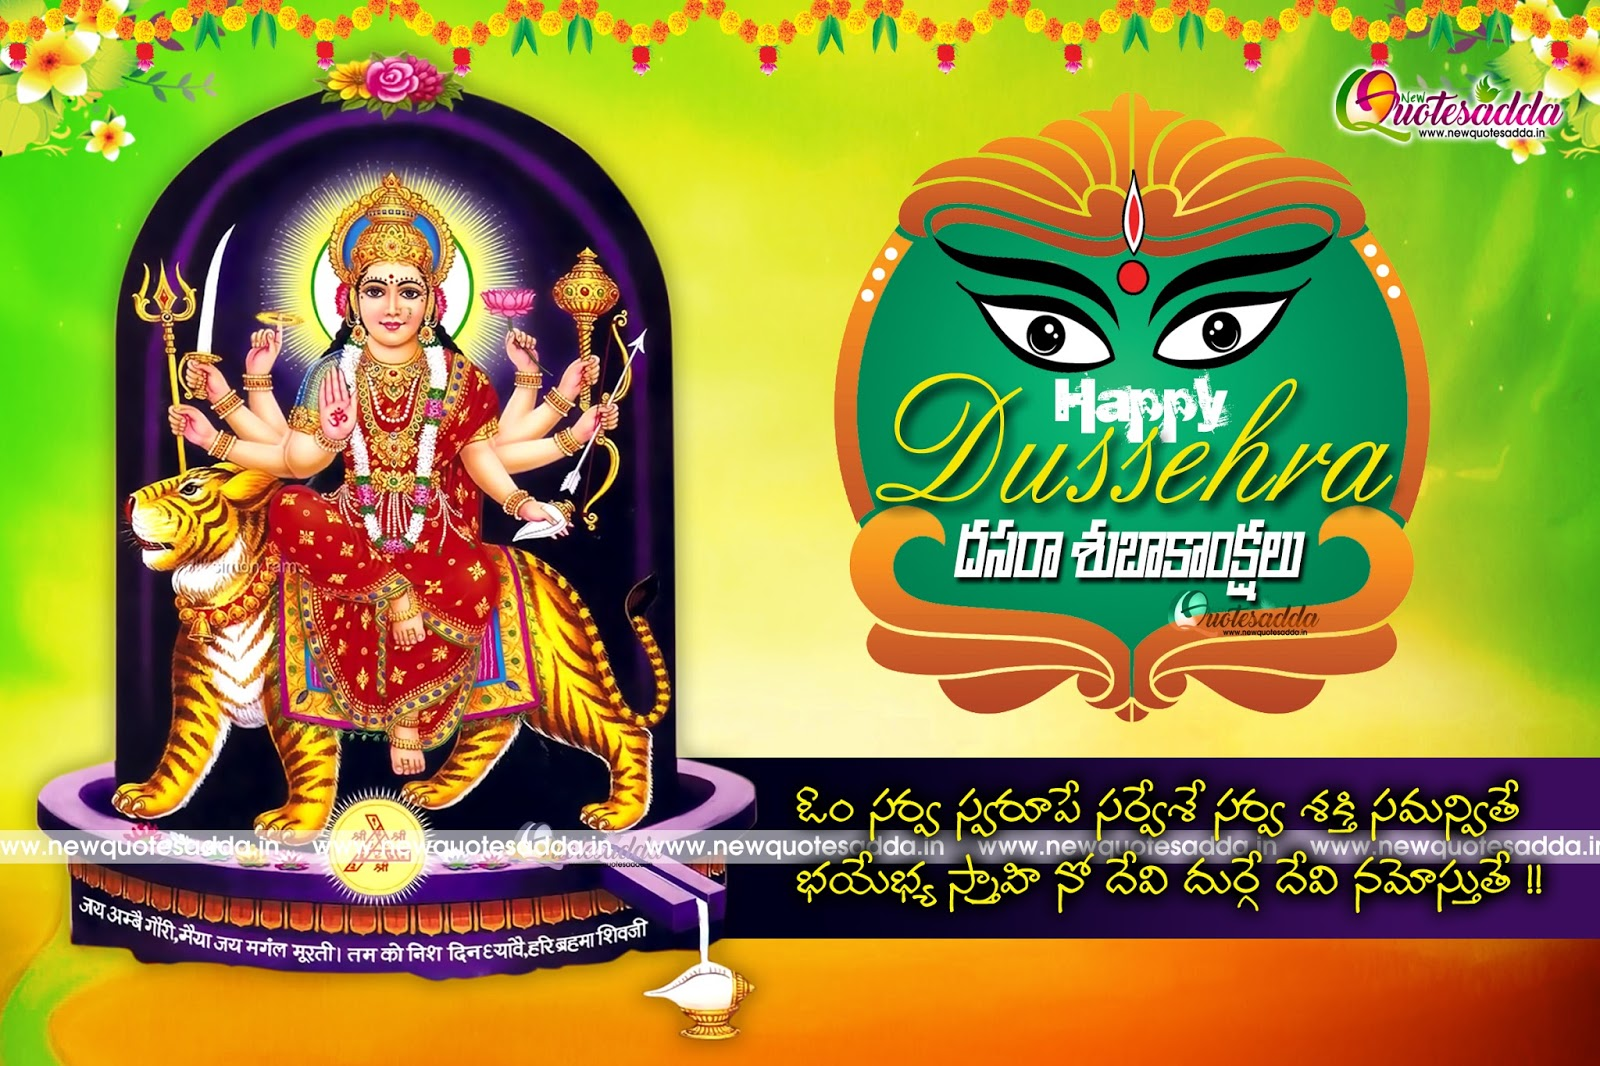 Happy dasara best quotes and greetings with slokam newquotesadda happy dussehra telugu quotes greetings and nice images m4hsunfo